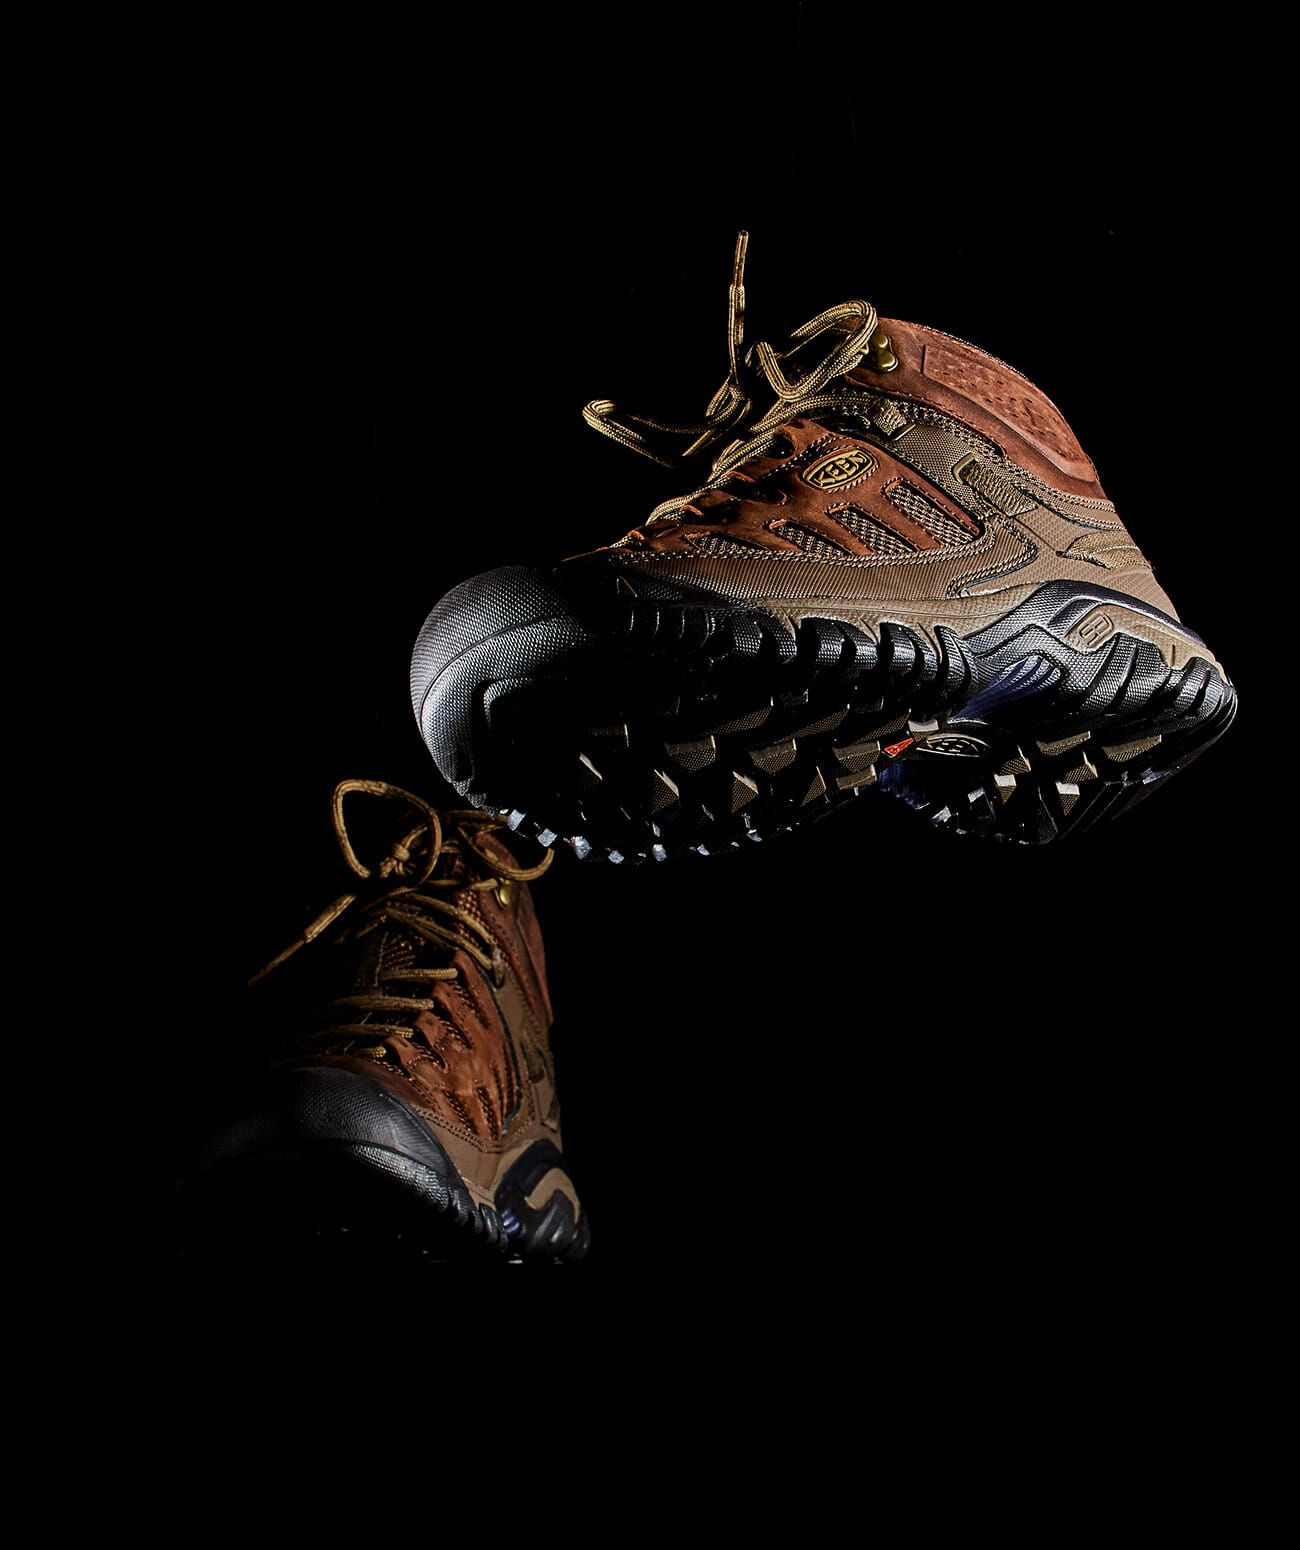 official shop free delivery top fashion The 18 Best Hiking Boots of 2019 • Gear Patrol